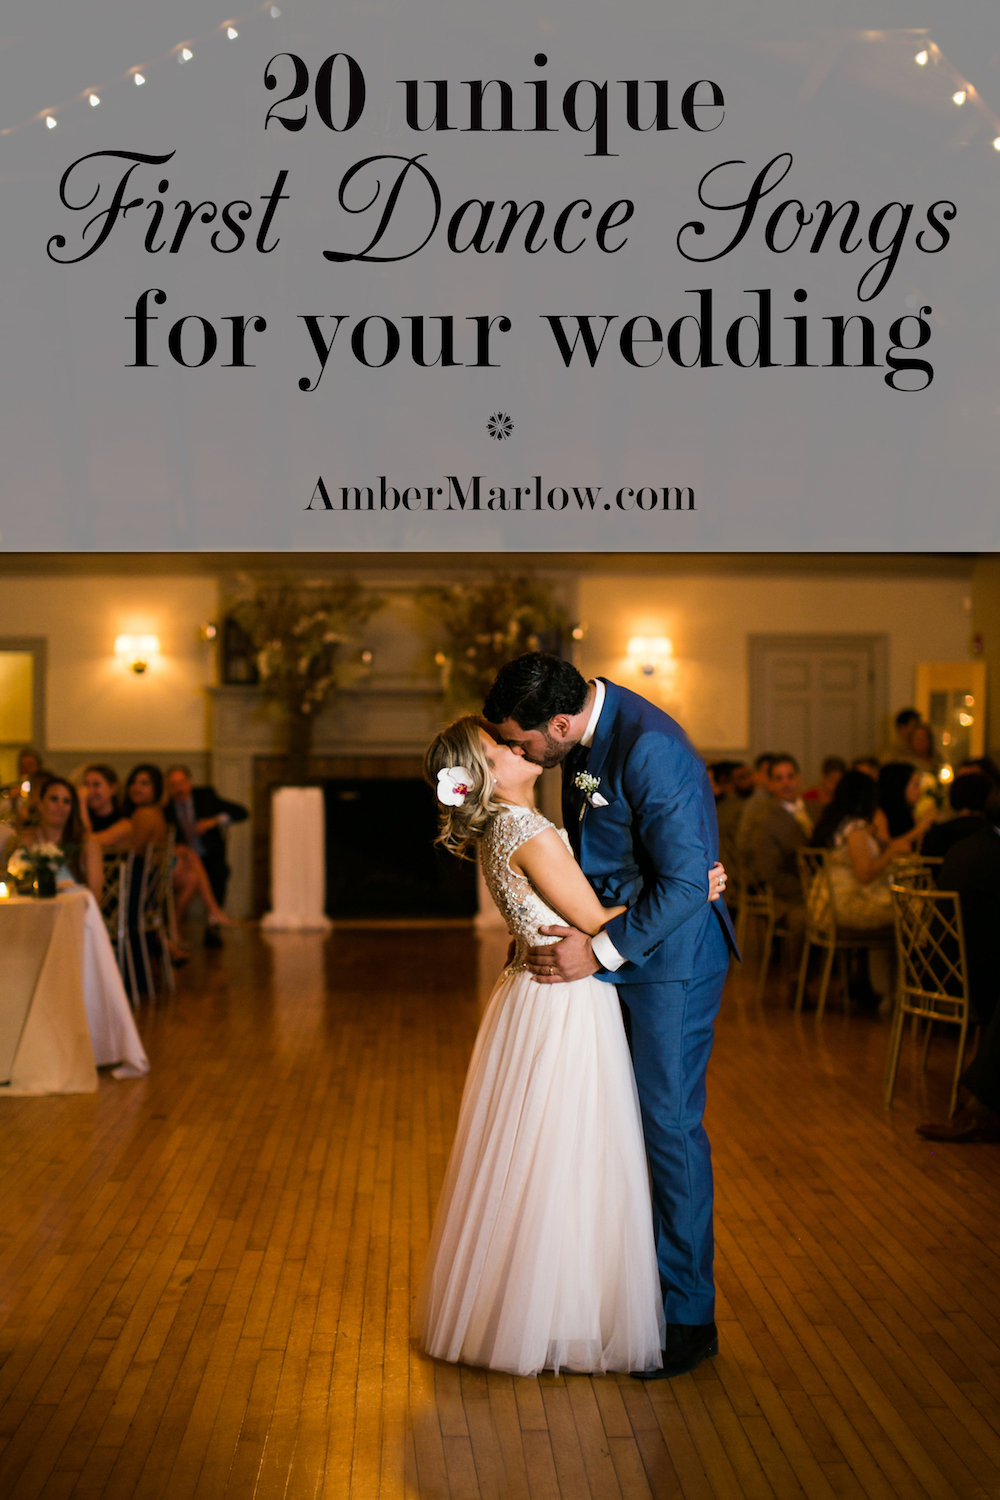 20 Unique First Dance Songs